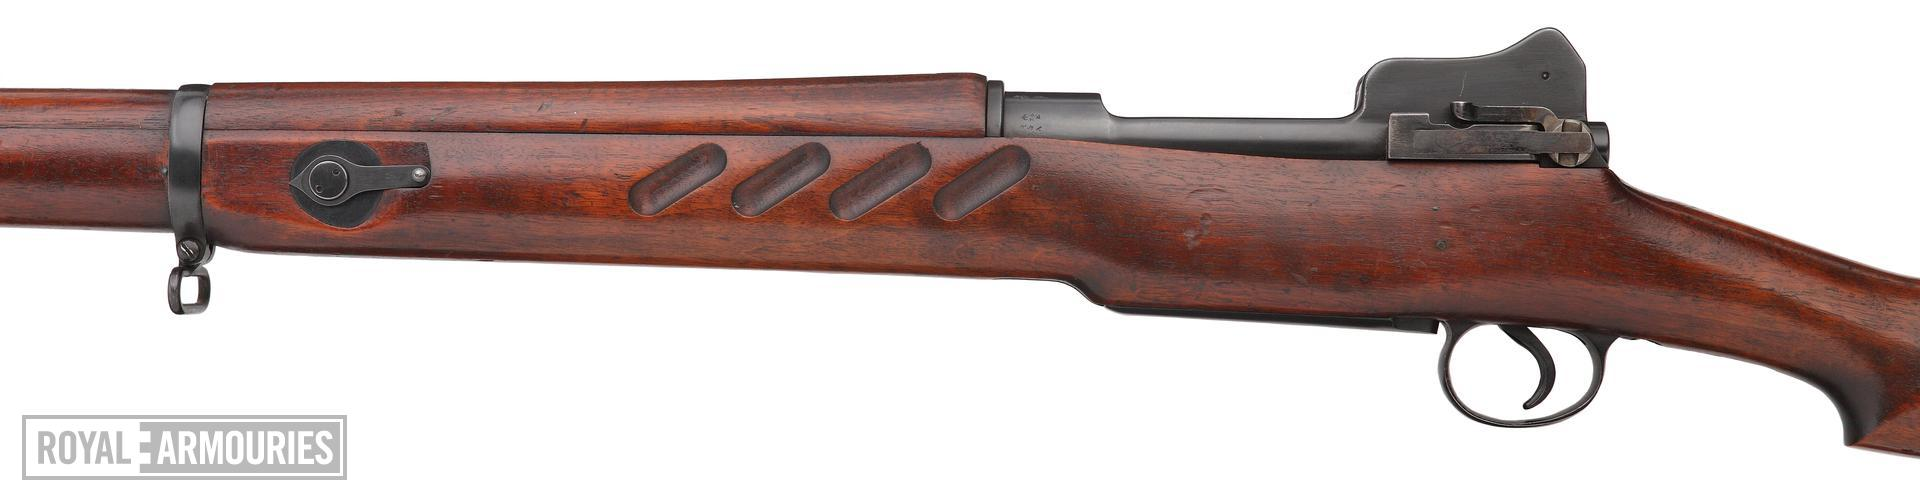 Pattern 1913 (P13), centrefire bolt action rifle, Enfield, Britain, 1914 produced by the Royal Small Arms Factory (RSAF.) Improved model with finger grooves and rear of body reprofiled in the style of the later Pattern 1914 and 1917 rifles.